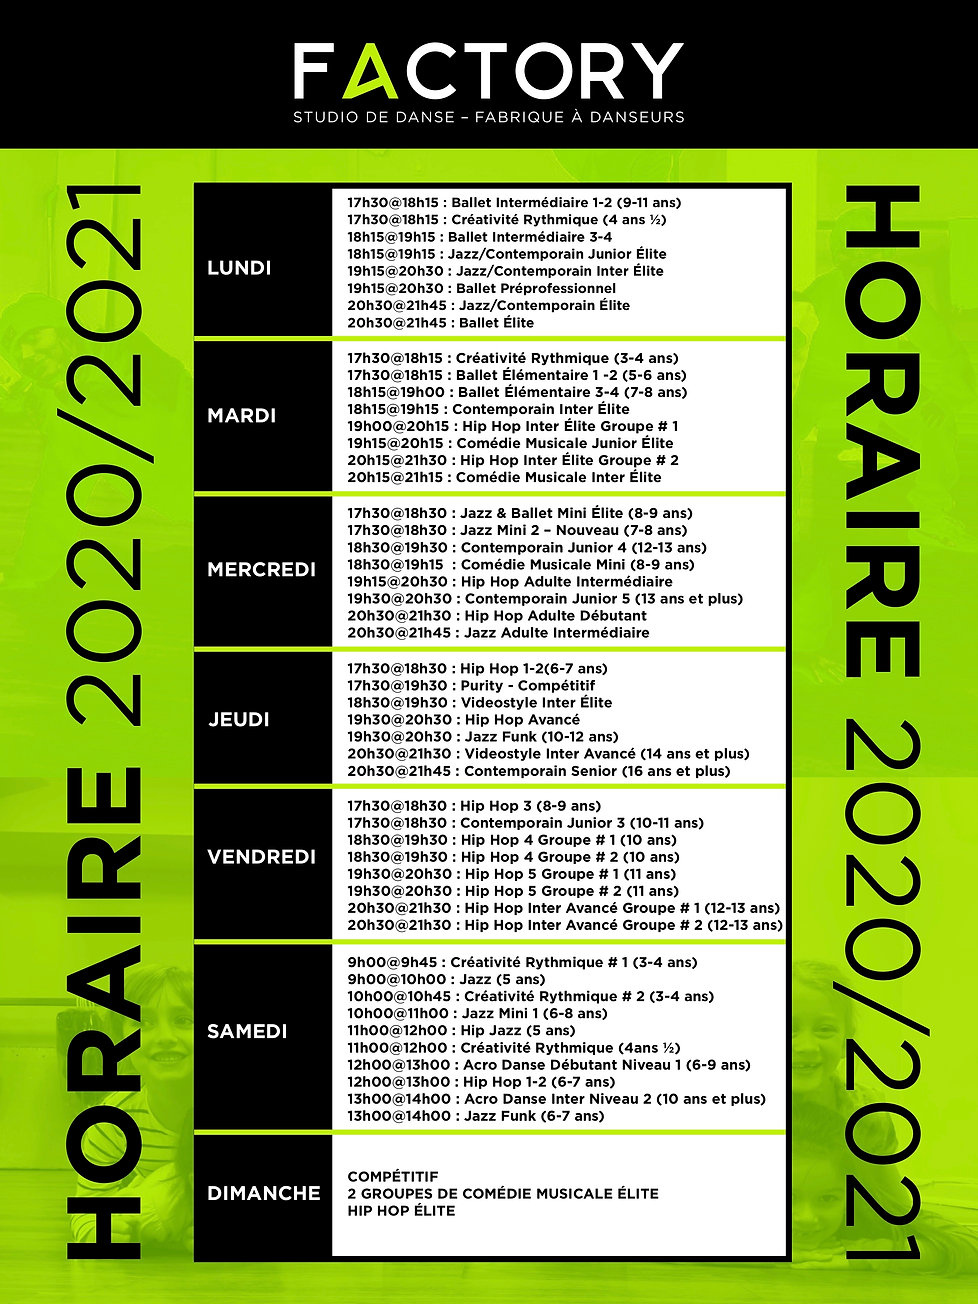 POSTER-HORAIRE-18X24POUCES-FACTORY-1.jpg